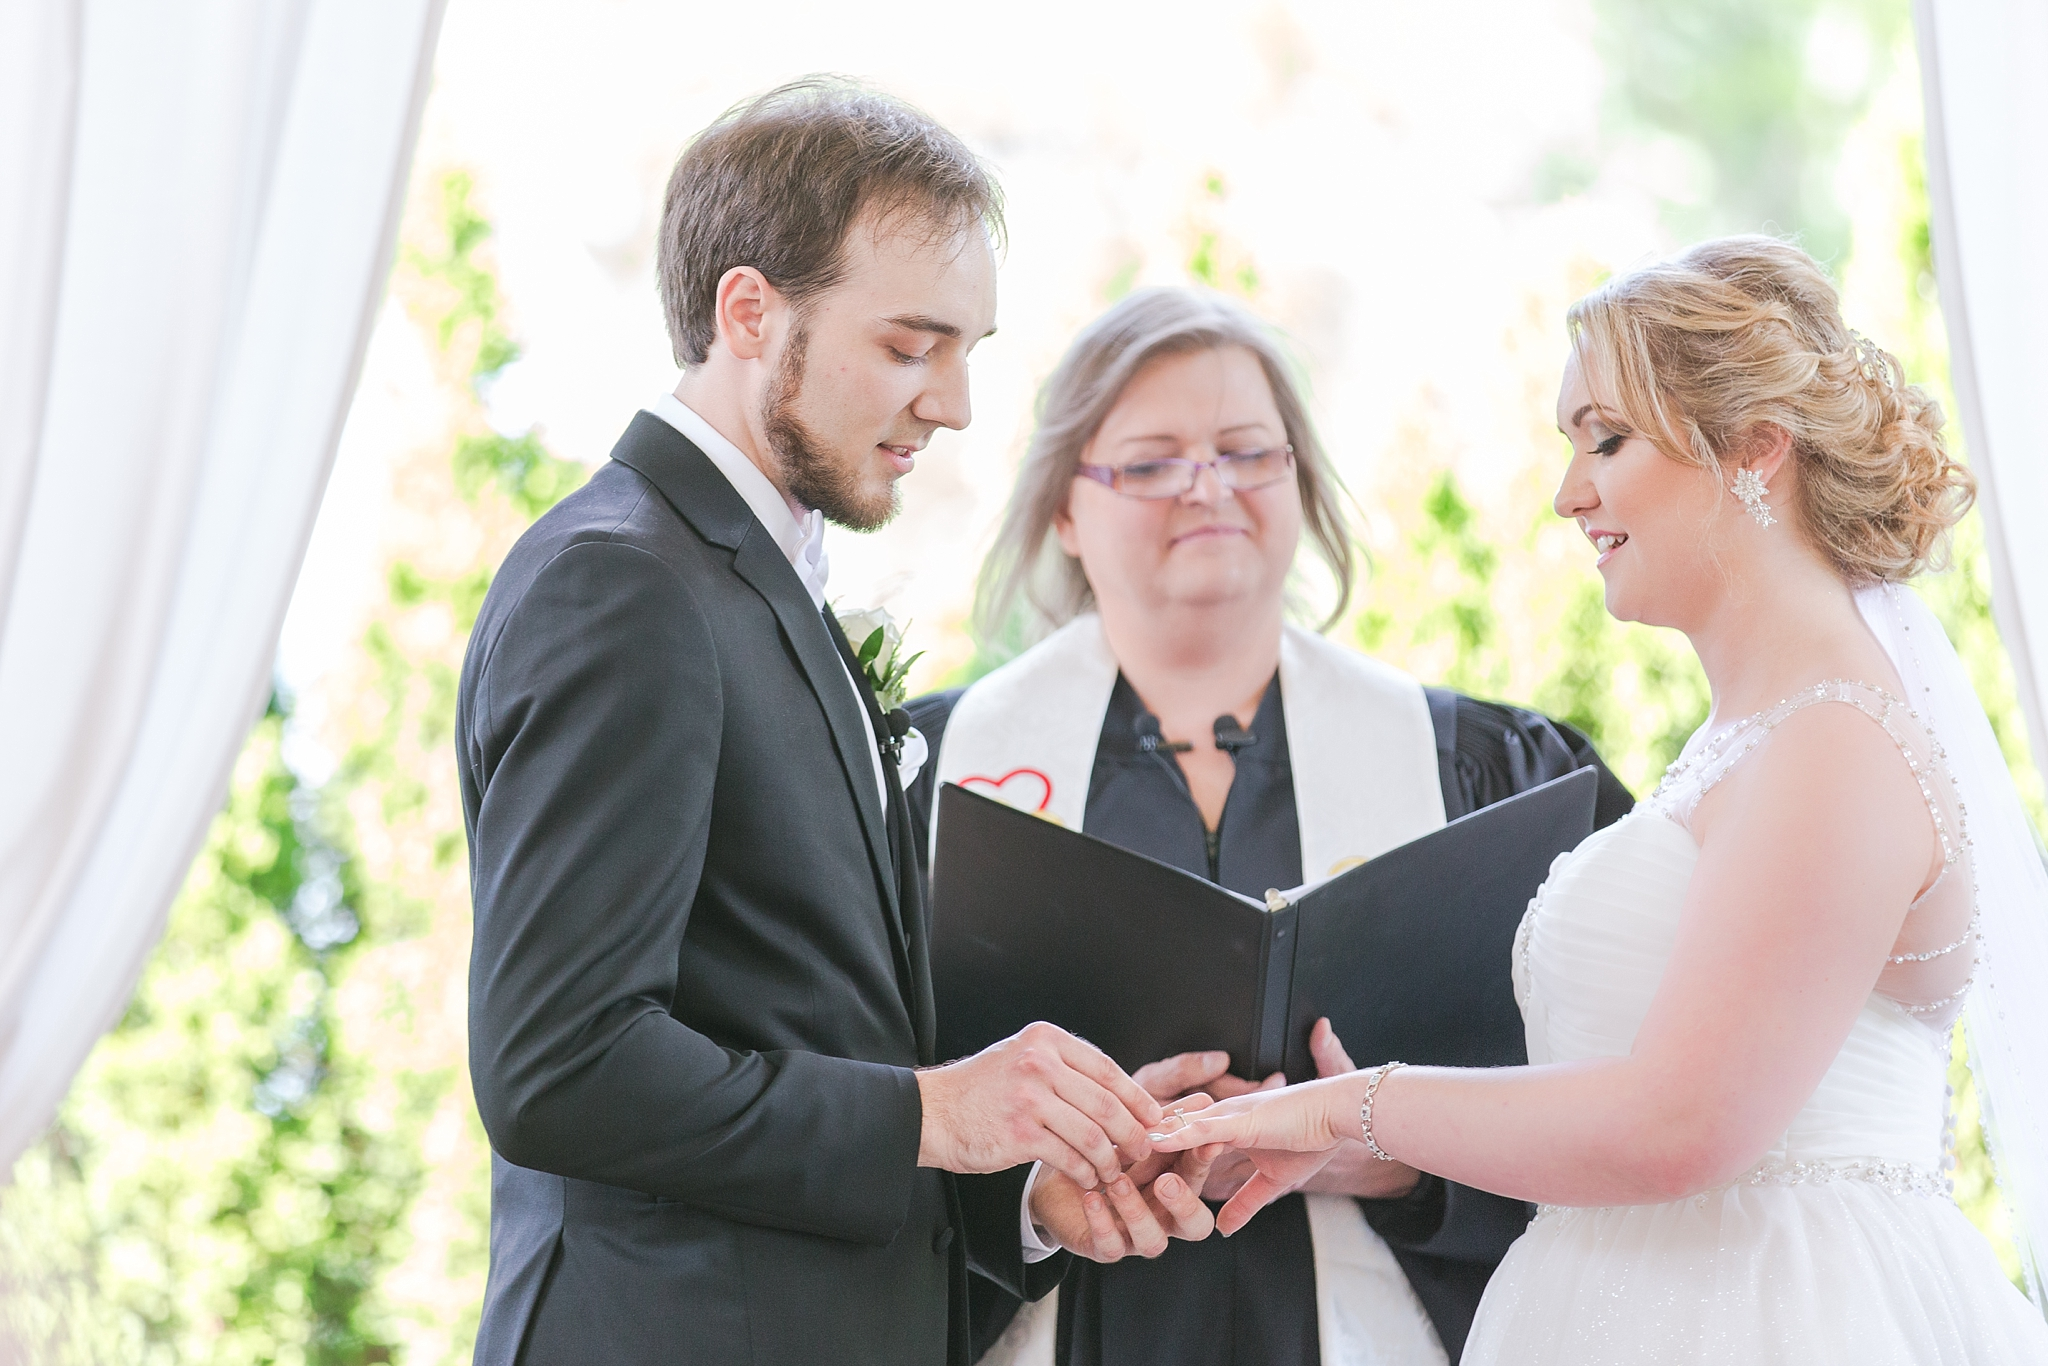 romantic-artful-candid-wedding-photos-in-detroit-lansing-ann-arbor-northern-michigan-and-chicago-by-courtney-carolyn-photography_0027.jpg